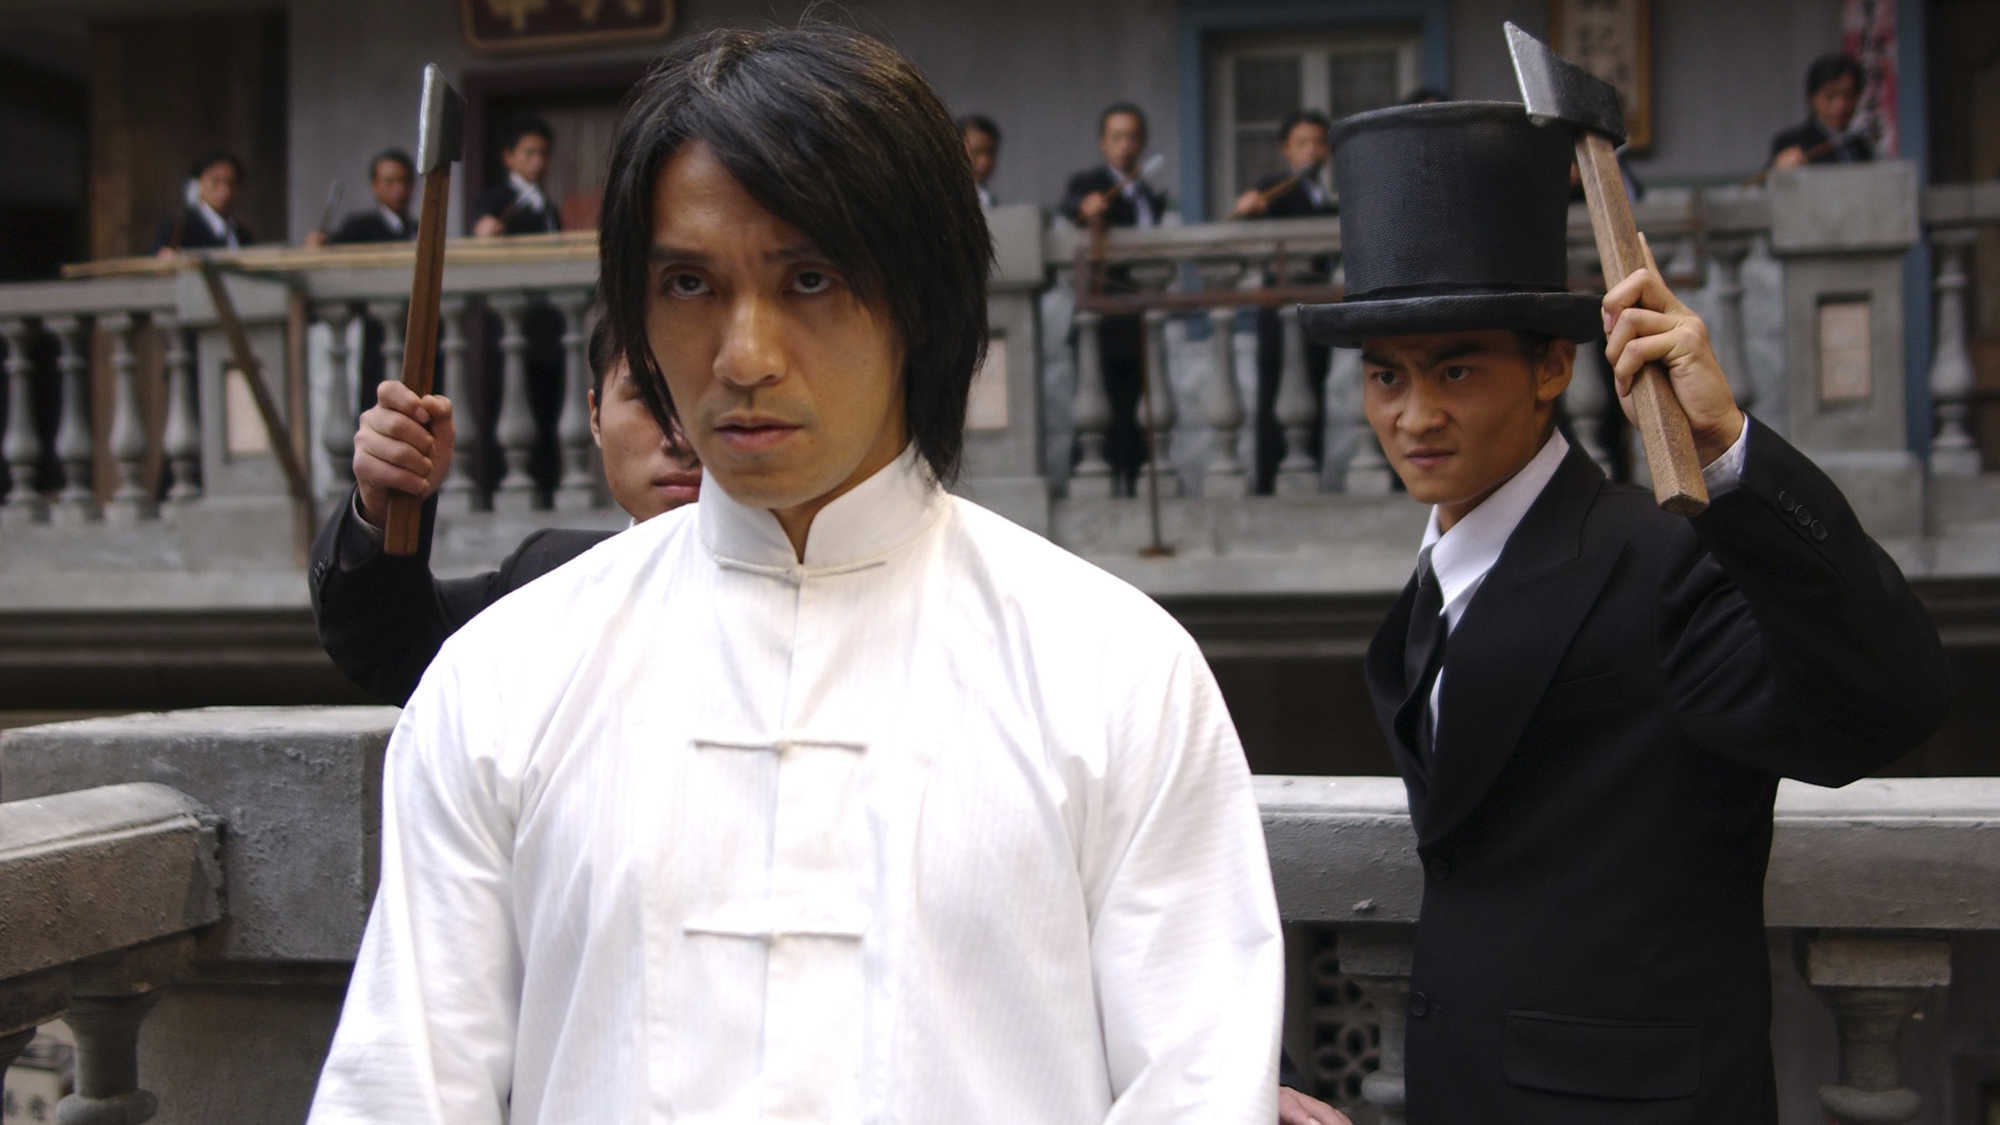 Director, writer and lead actor Stephen Chow in Kung Fu Hustle (2004)